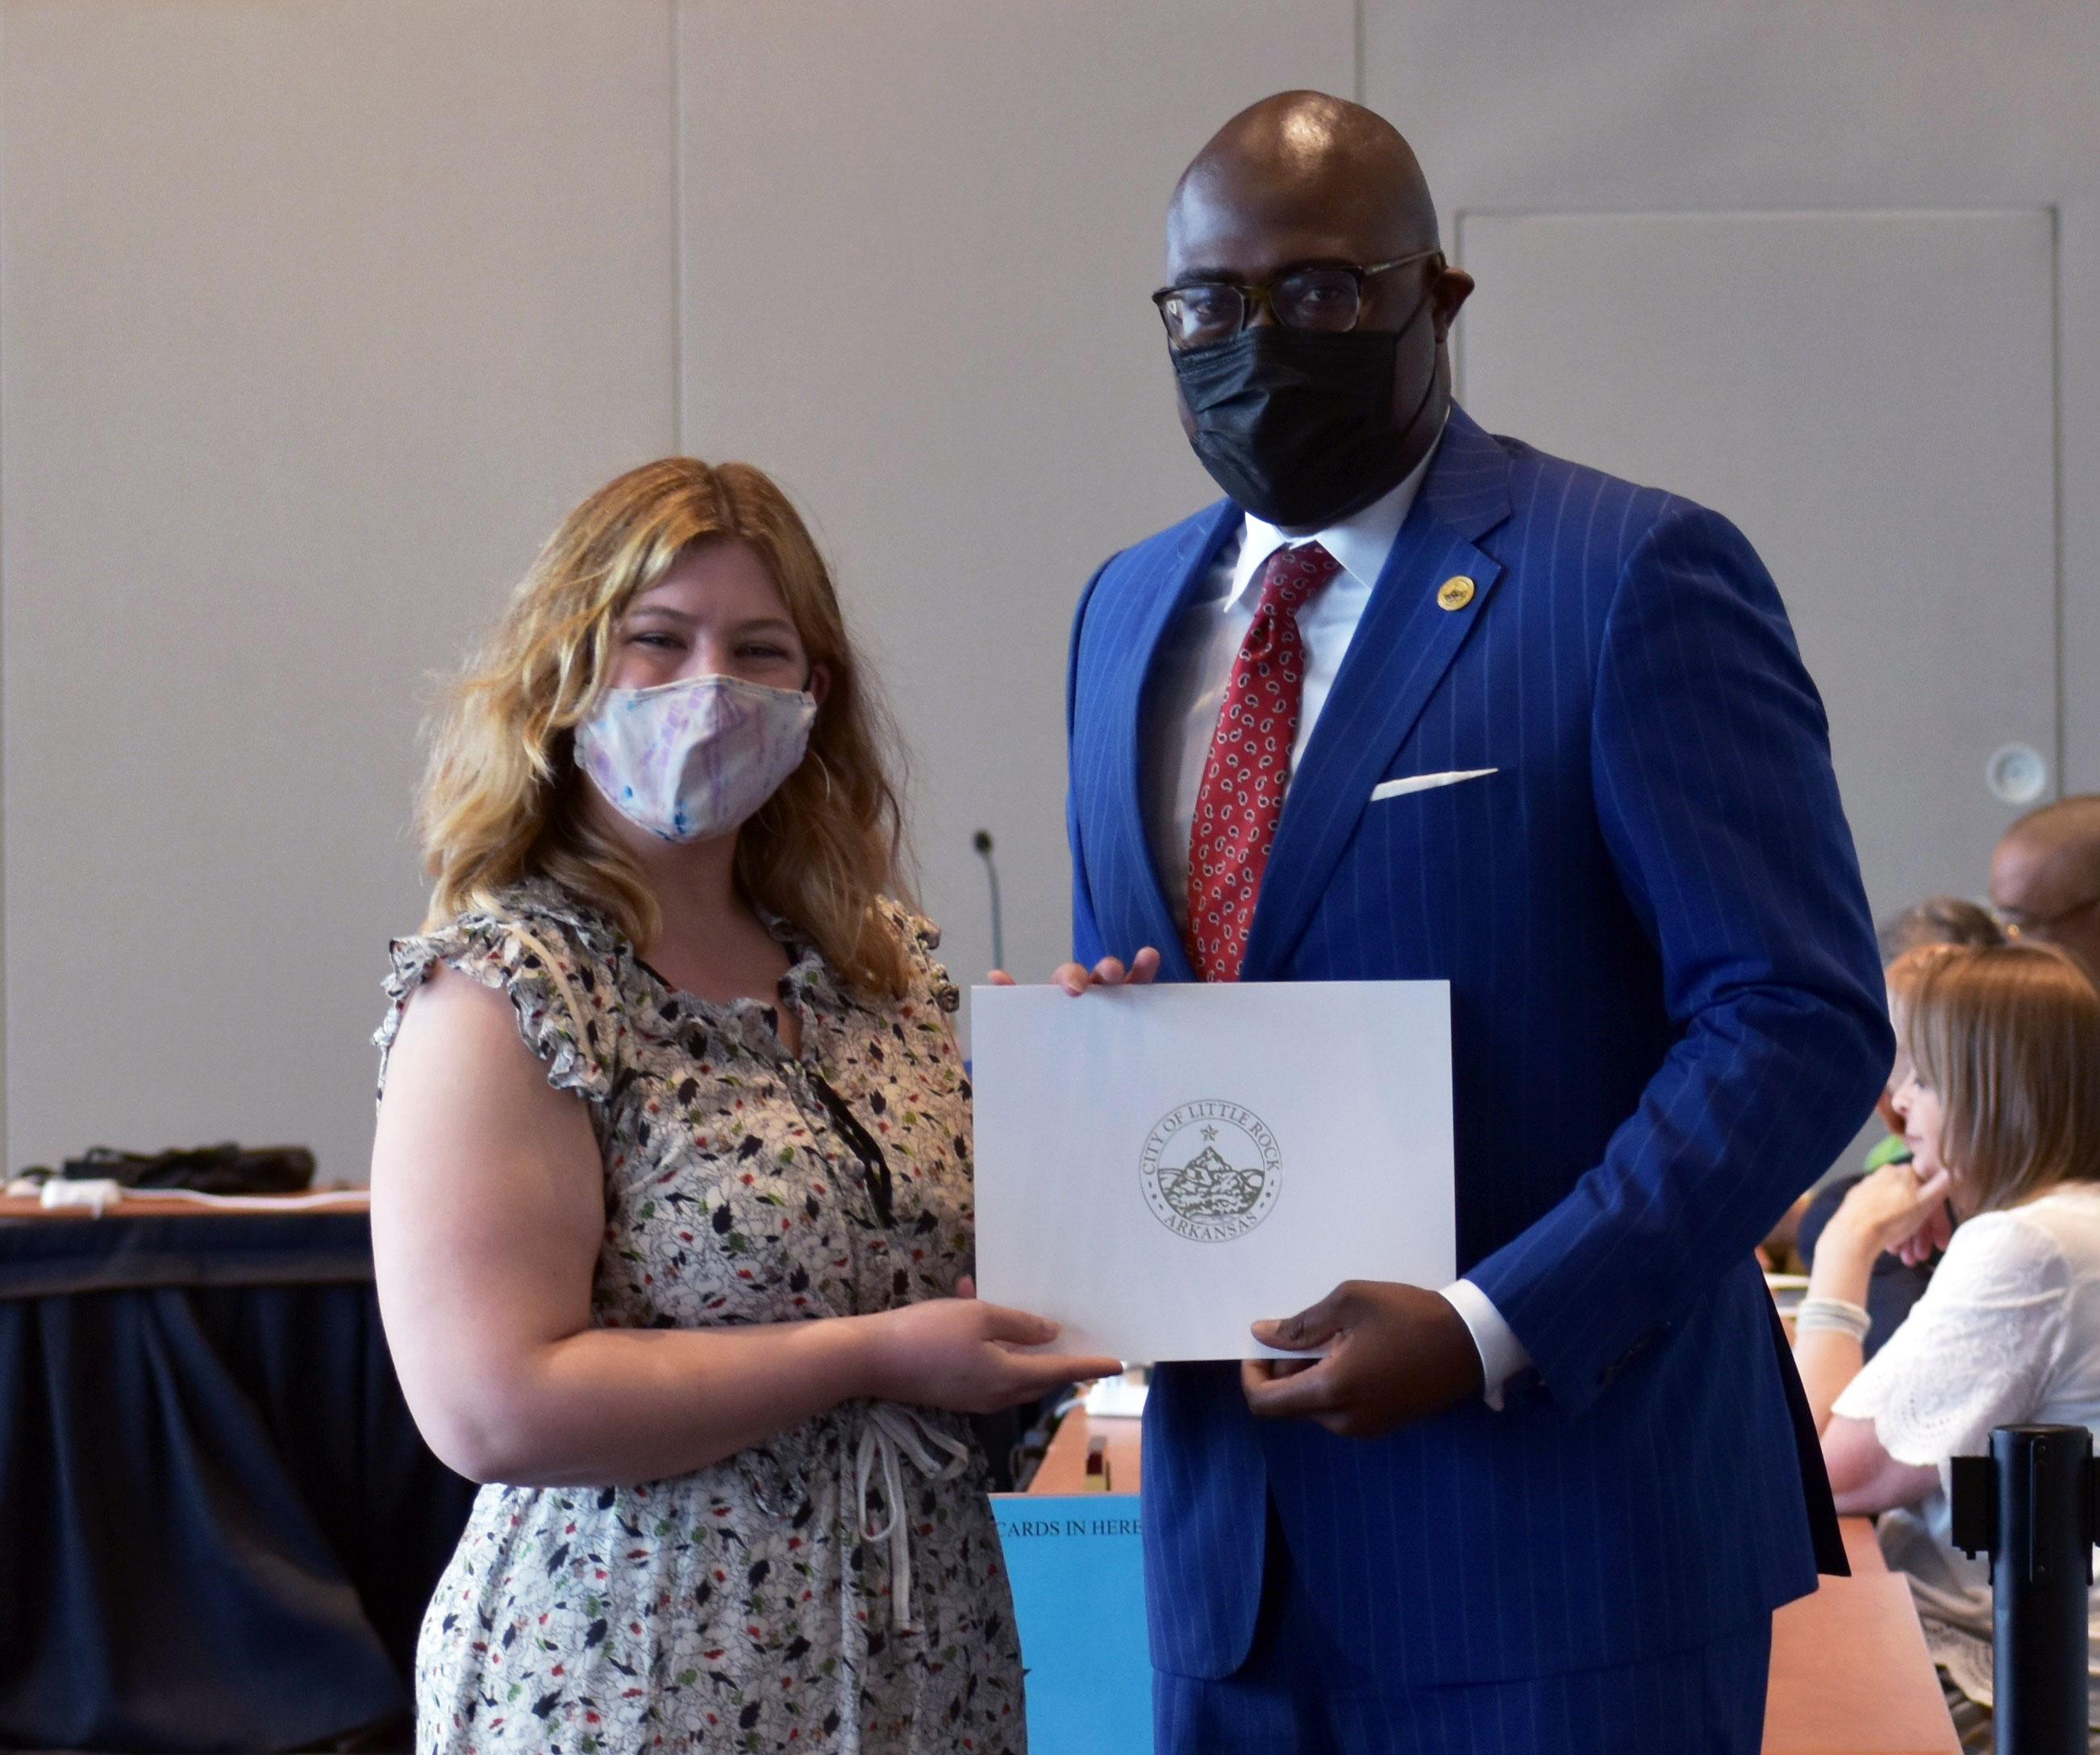 Little Rock Mayor Frank Scott Jr. presents Geneva Galloway with a certificate during her graduation from R.O.C.K. Academy.